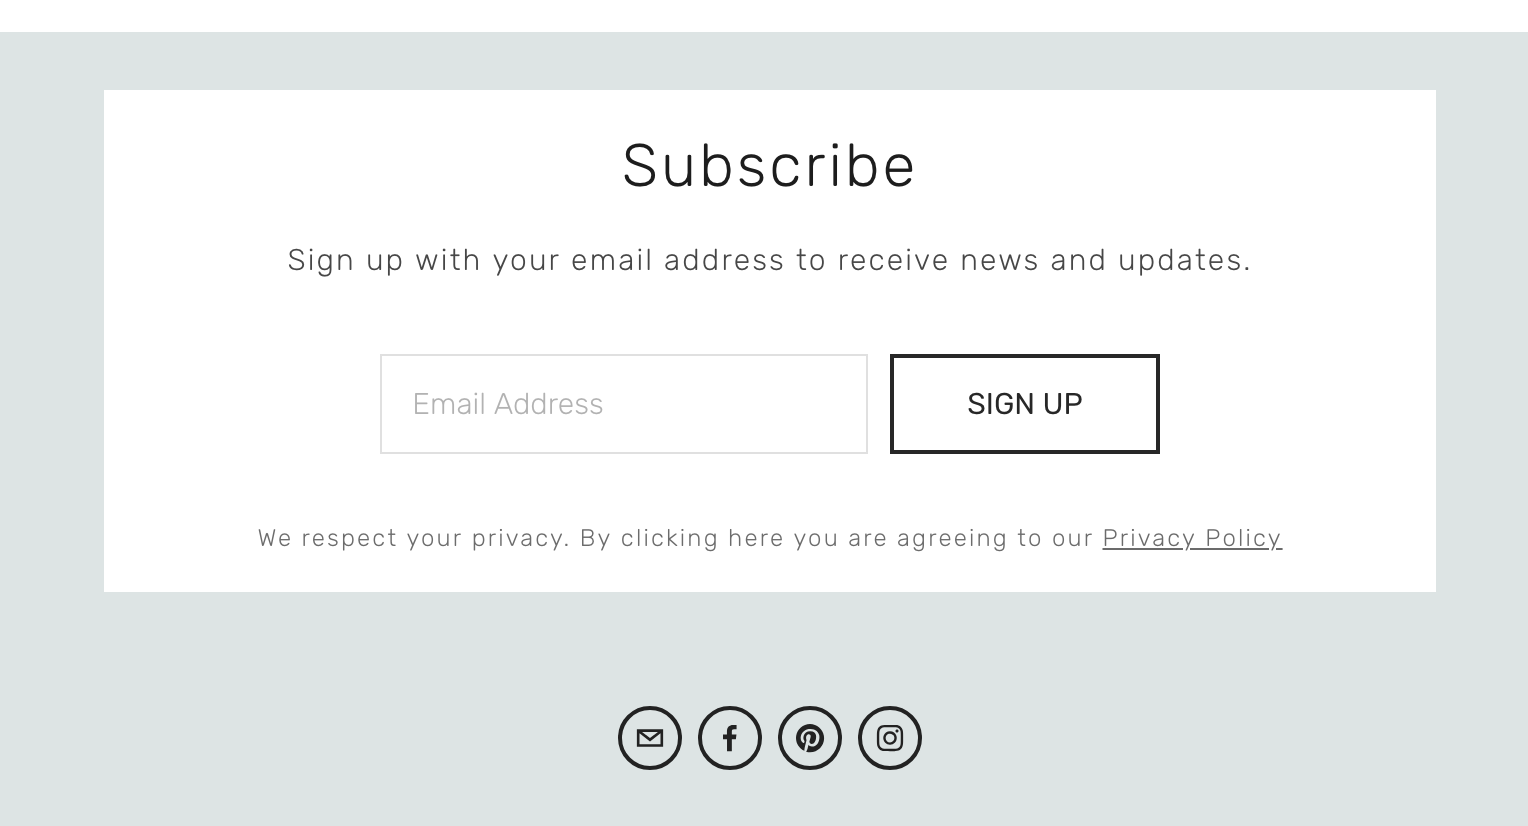 Subscribe to our newsletter - We send out emails to let you know about new products, patterns and offers.